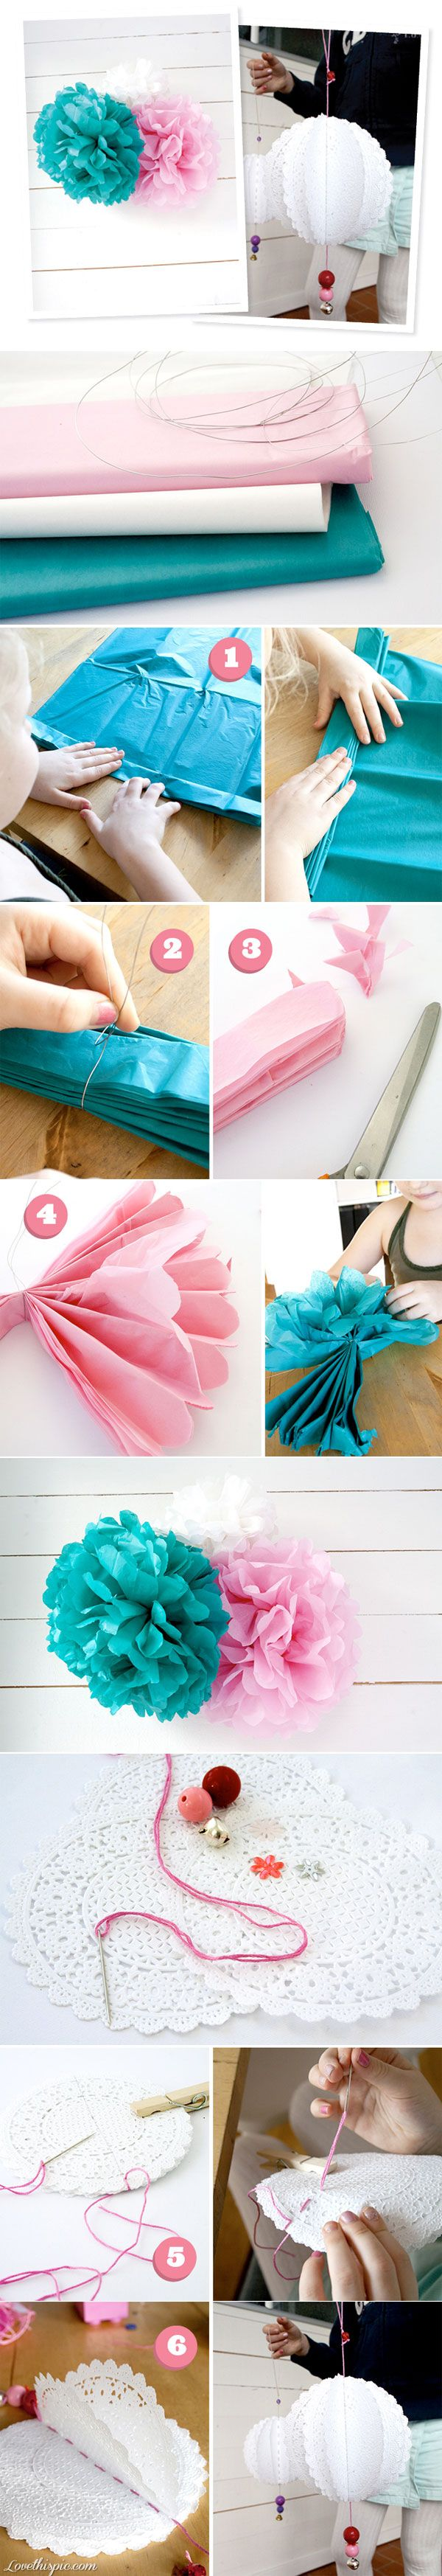 DIY pom poms flowers -might be cute above our tea party table in brighter colors